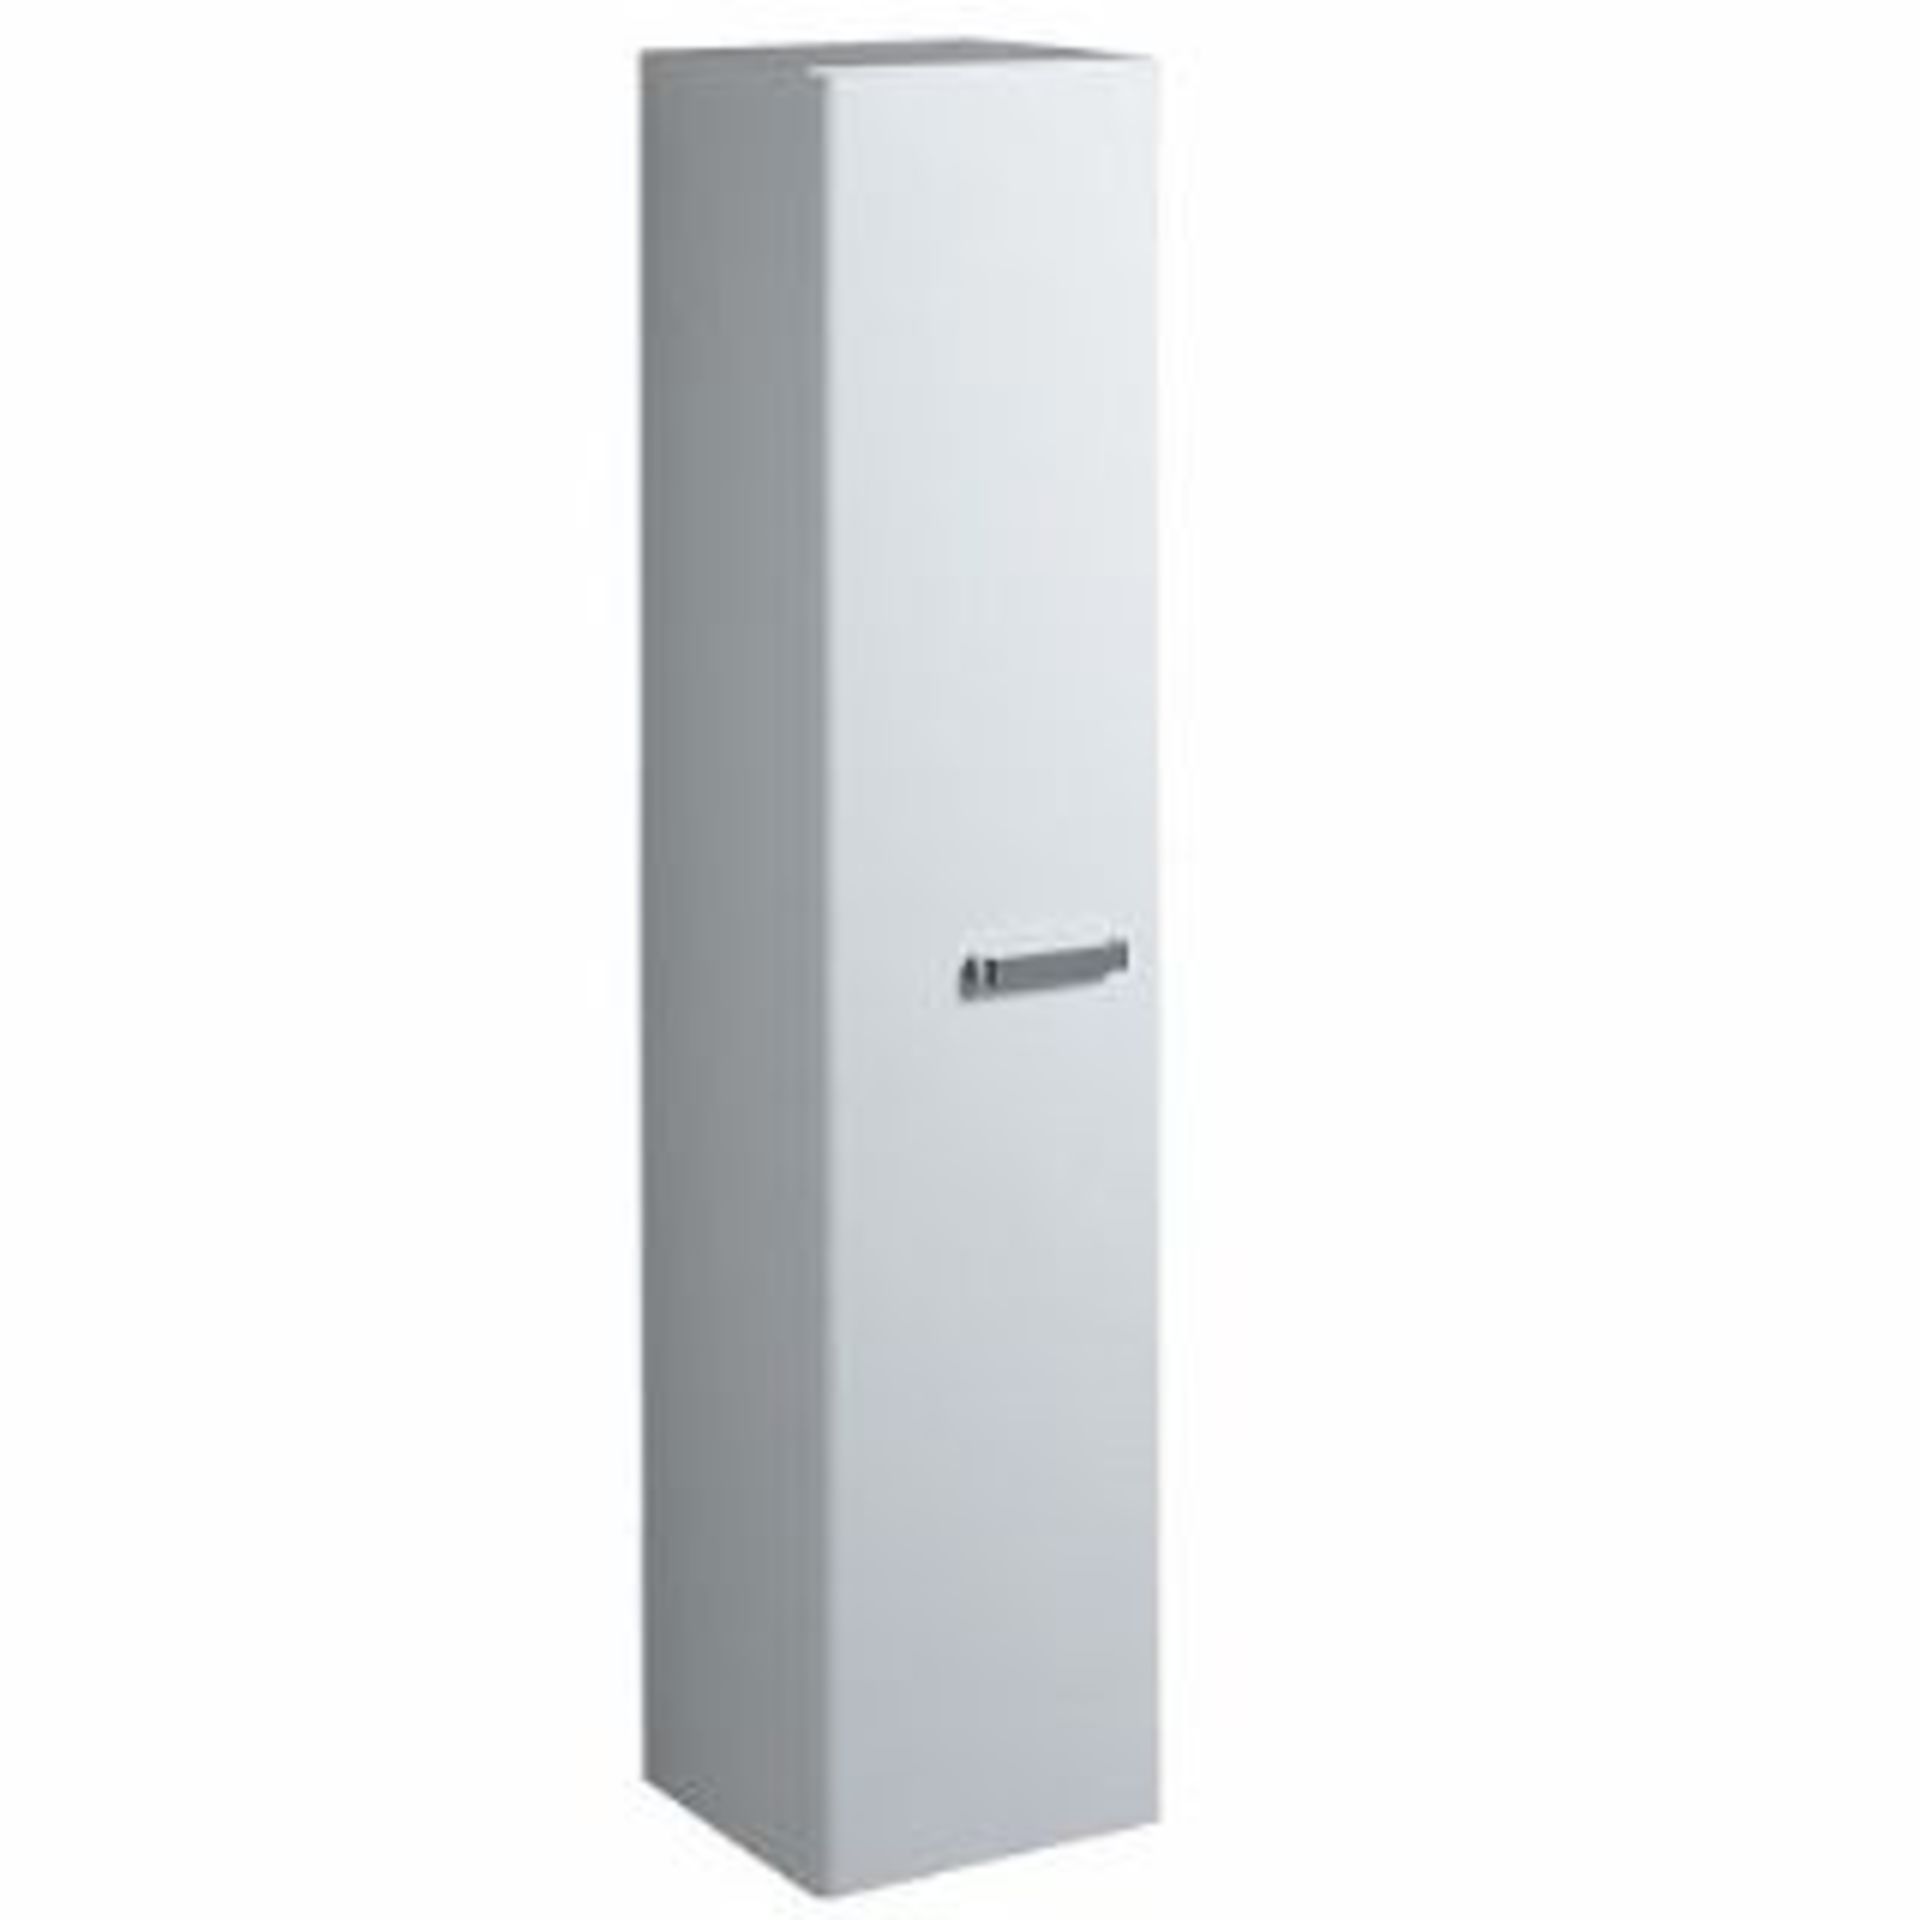 Lot 844 - Brand New (DE100) Twyford 1730mm White Tall Furniture Unit. RRP £863.99. White gloss finish Wall mou